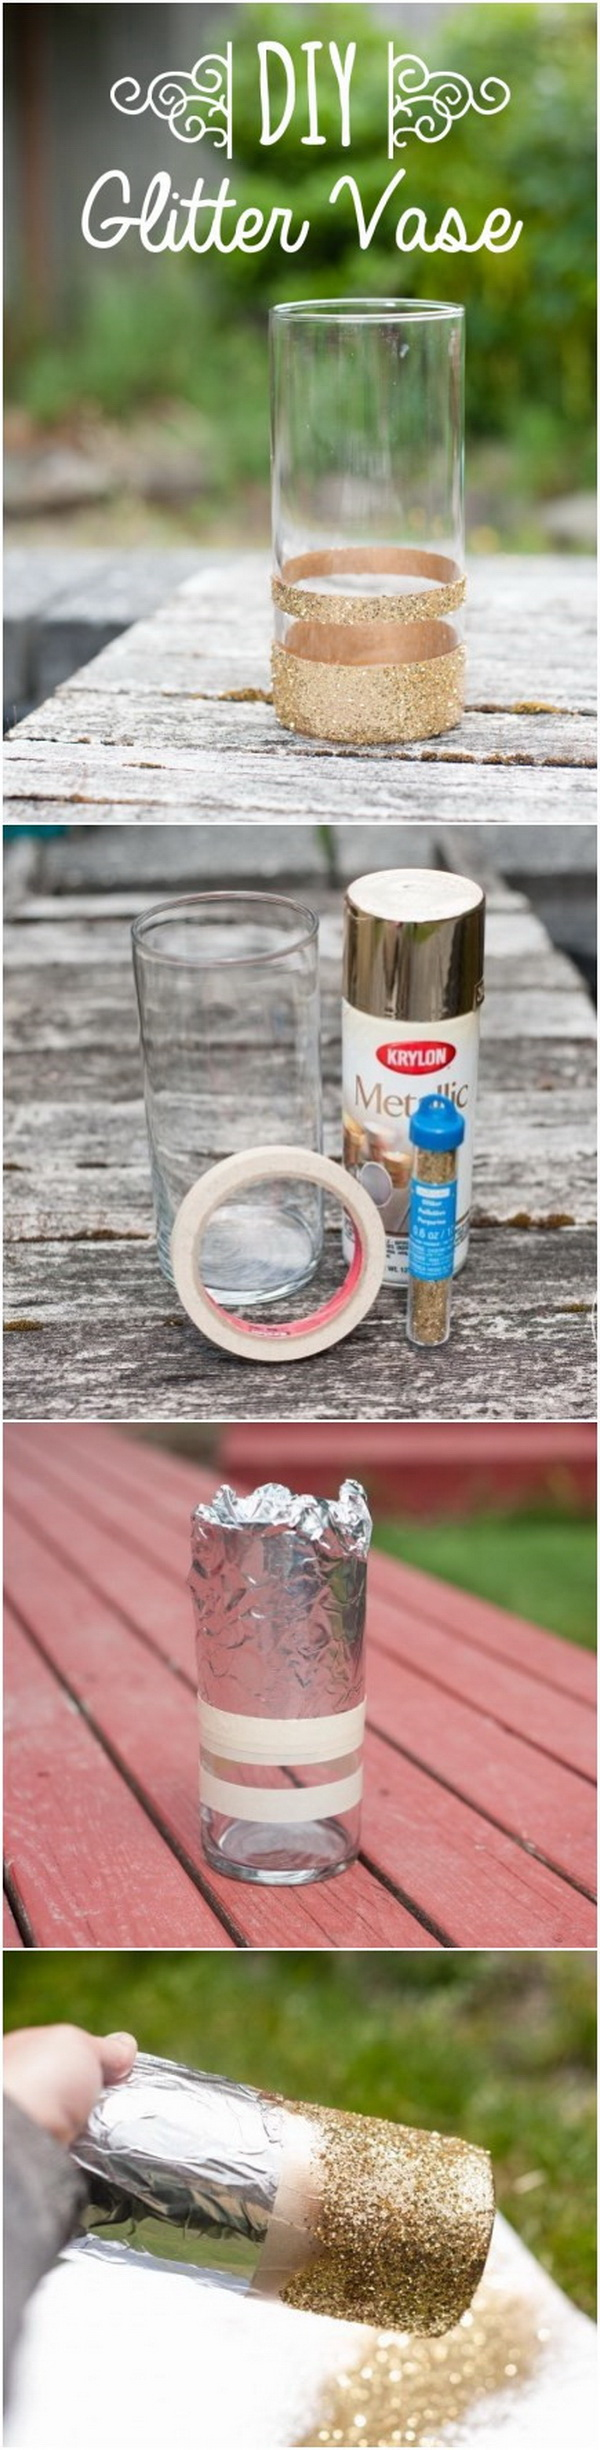 DIY Glitter Vase. Turn an ordinary vase into an extraordinary glittery vase! Beautiful centerpiece vase for the New Year's Eve party or any occasion.